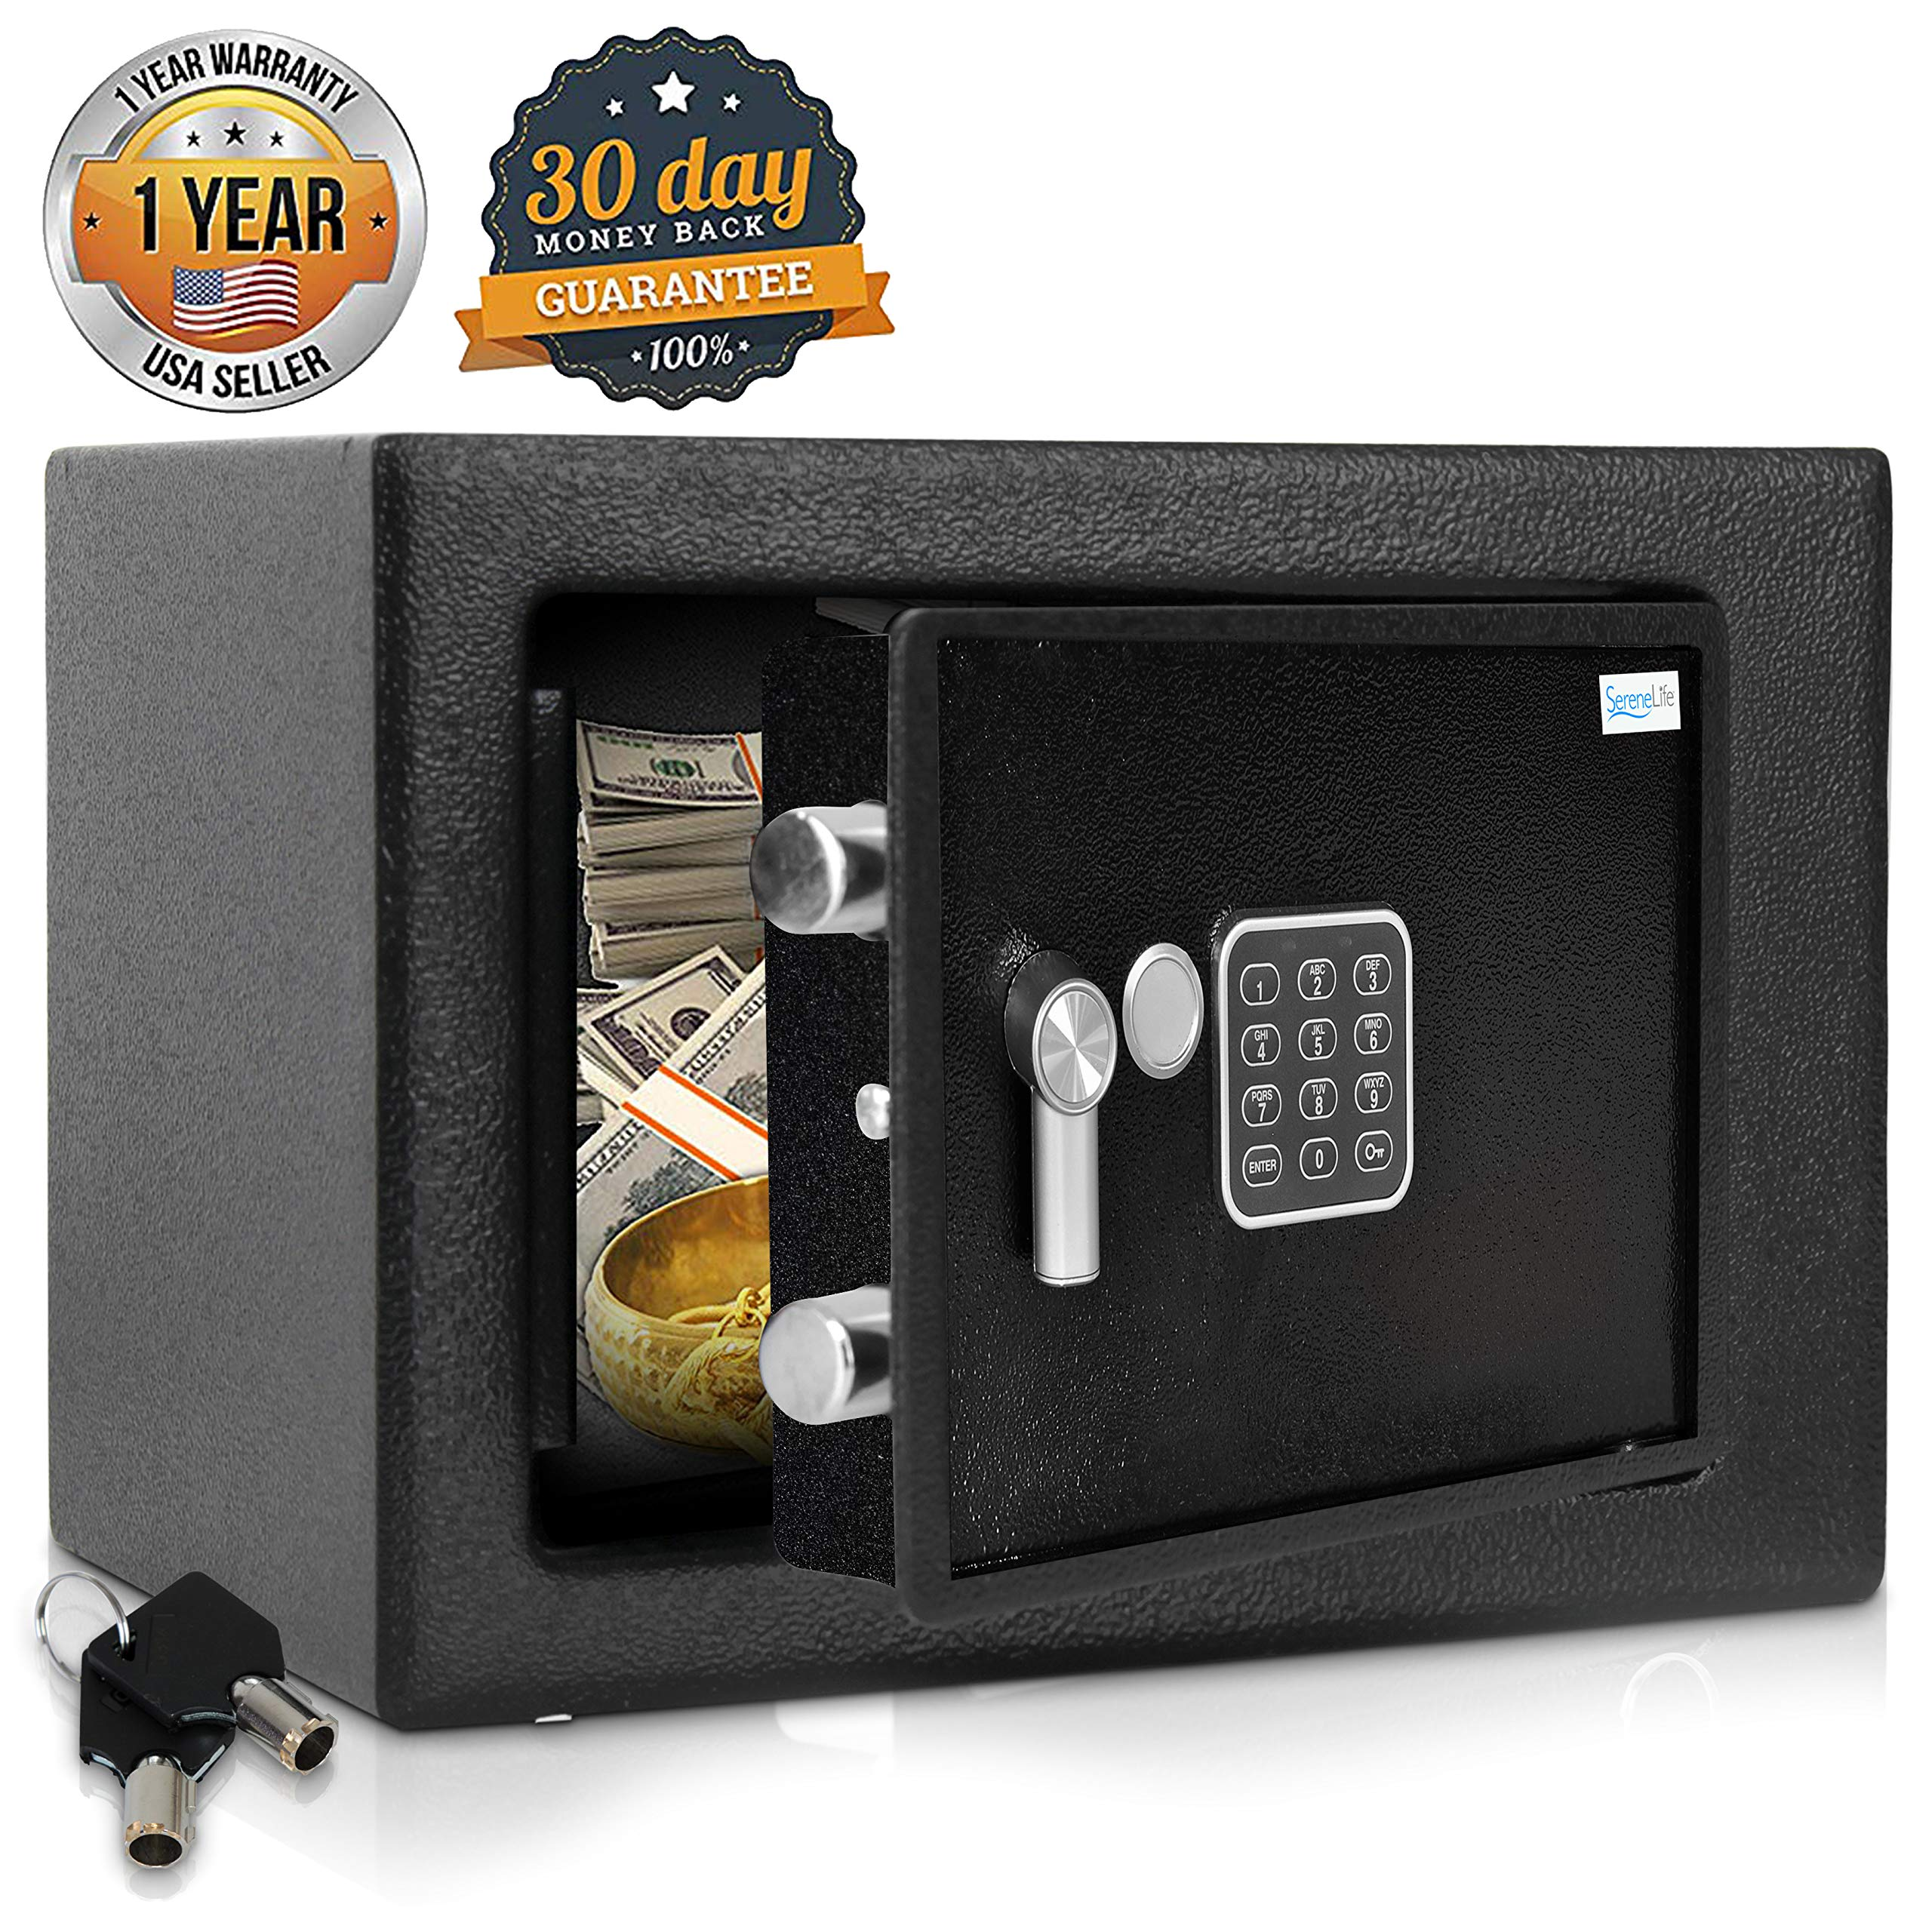 Home Security Electronic Lock Box - Safe with Mechanical Override, Digital Combination Lock Safe, LED Low Battery Indicator, Includes Mounting Bolts, Keys & (4) x 'AA' Batteries - SereneLife SLSFE15 by SereneLife